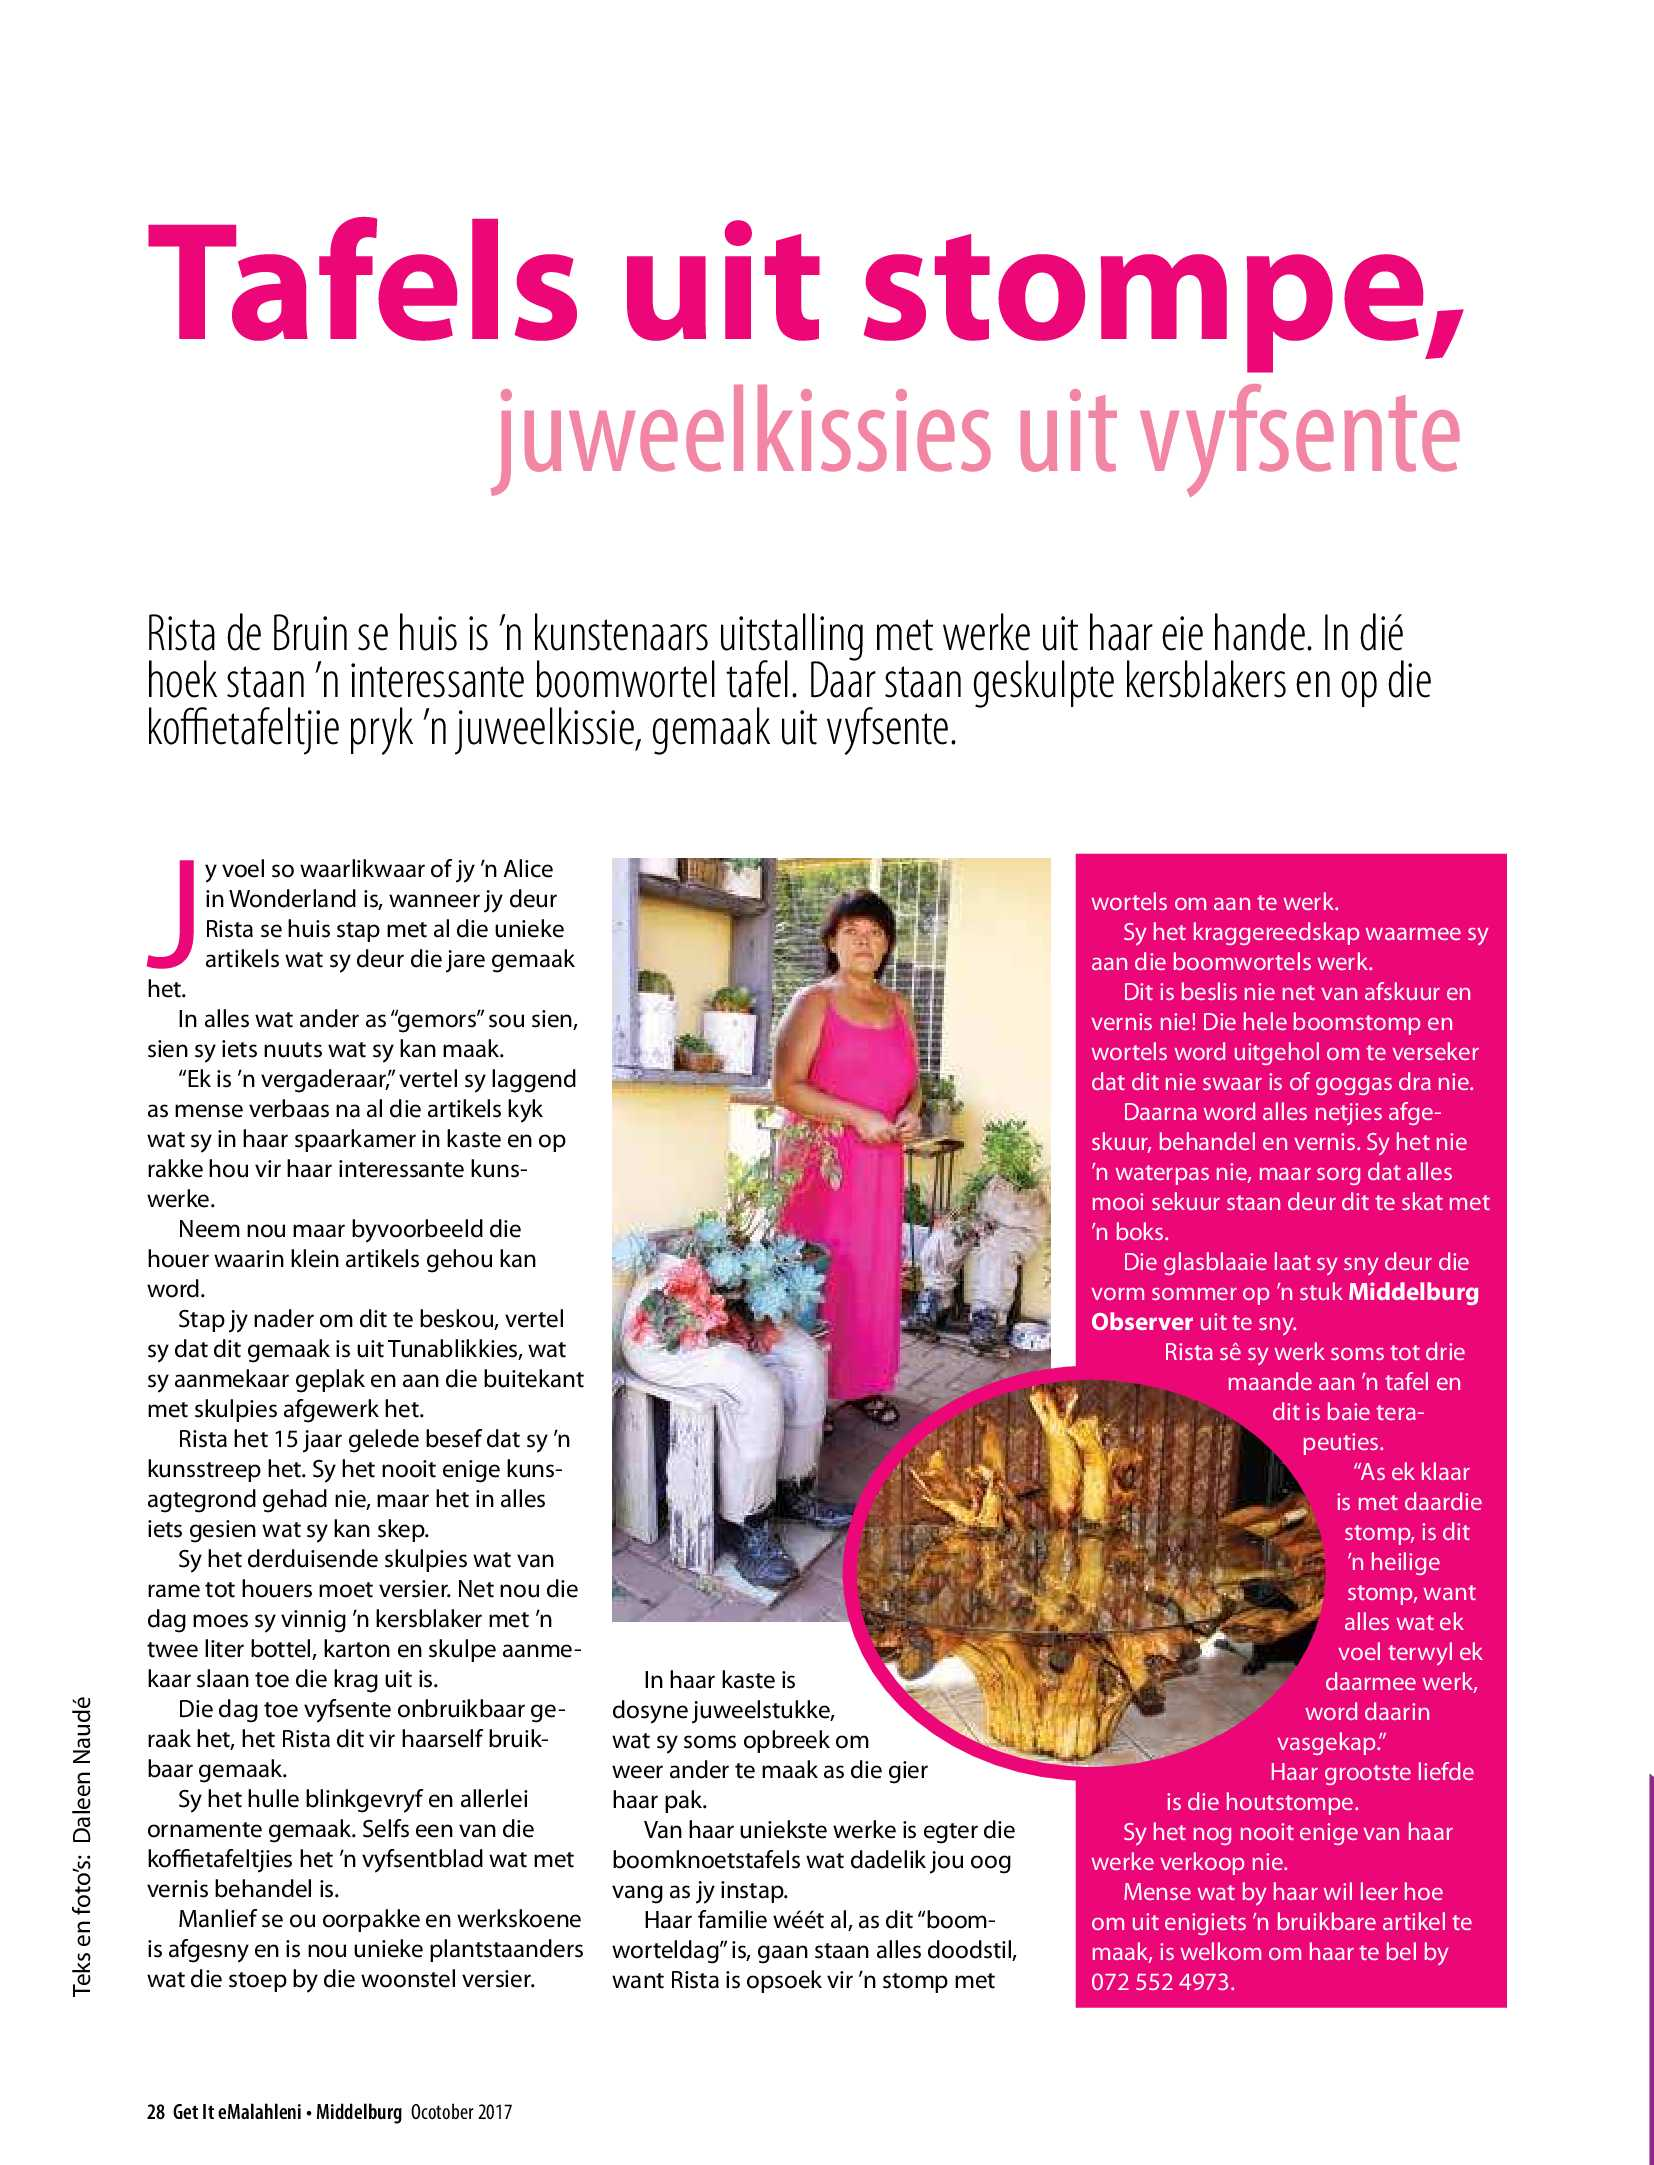 get-middelburg-october-17-epapers-page-30